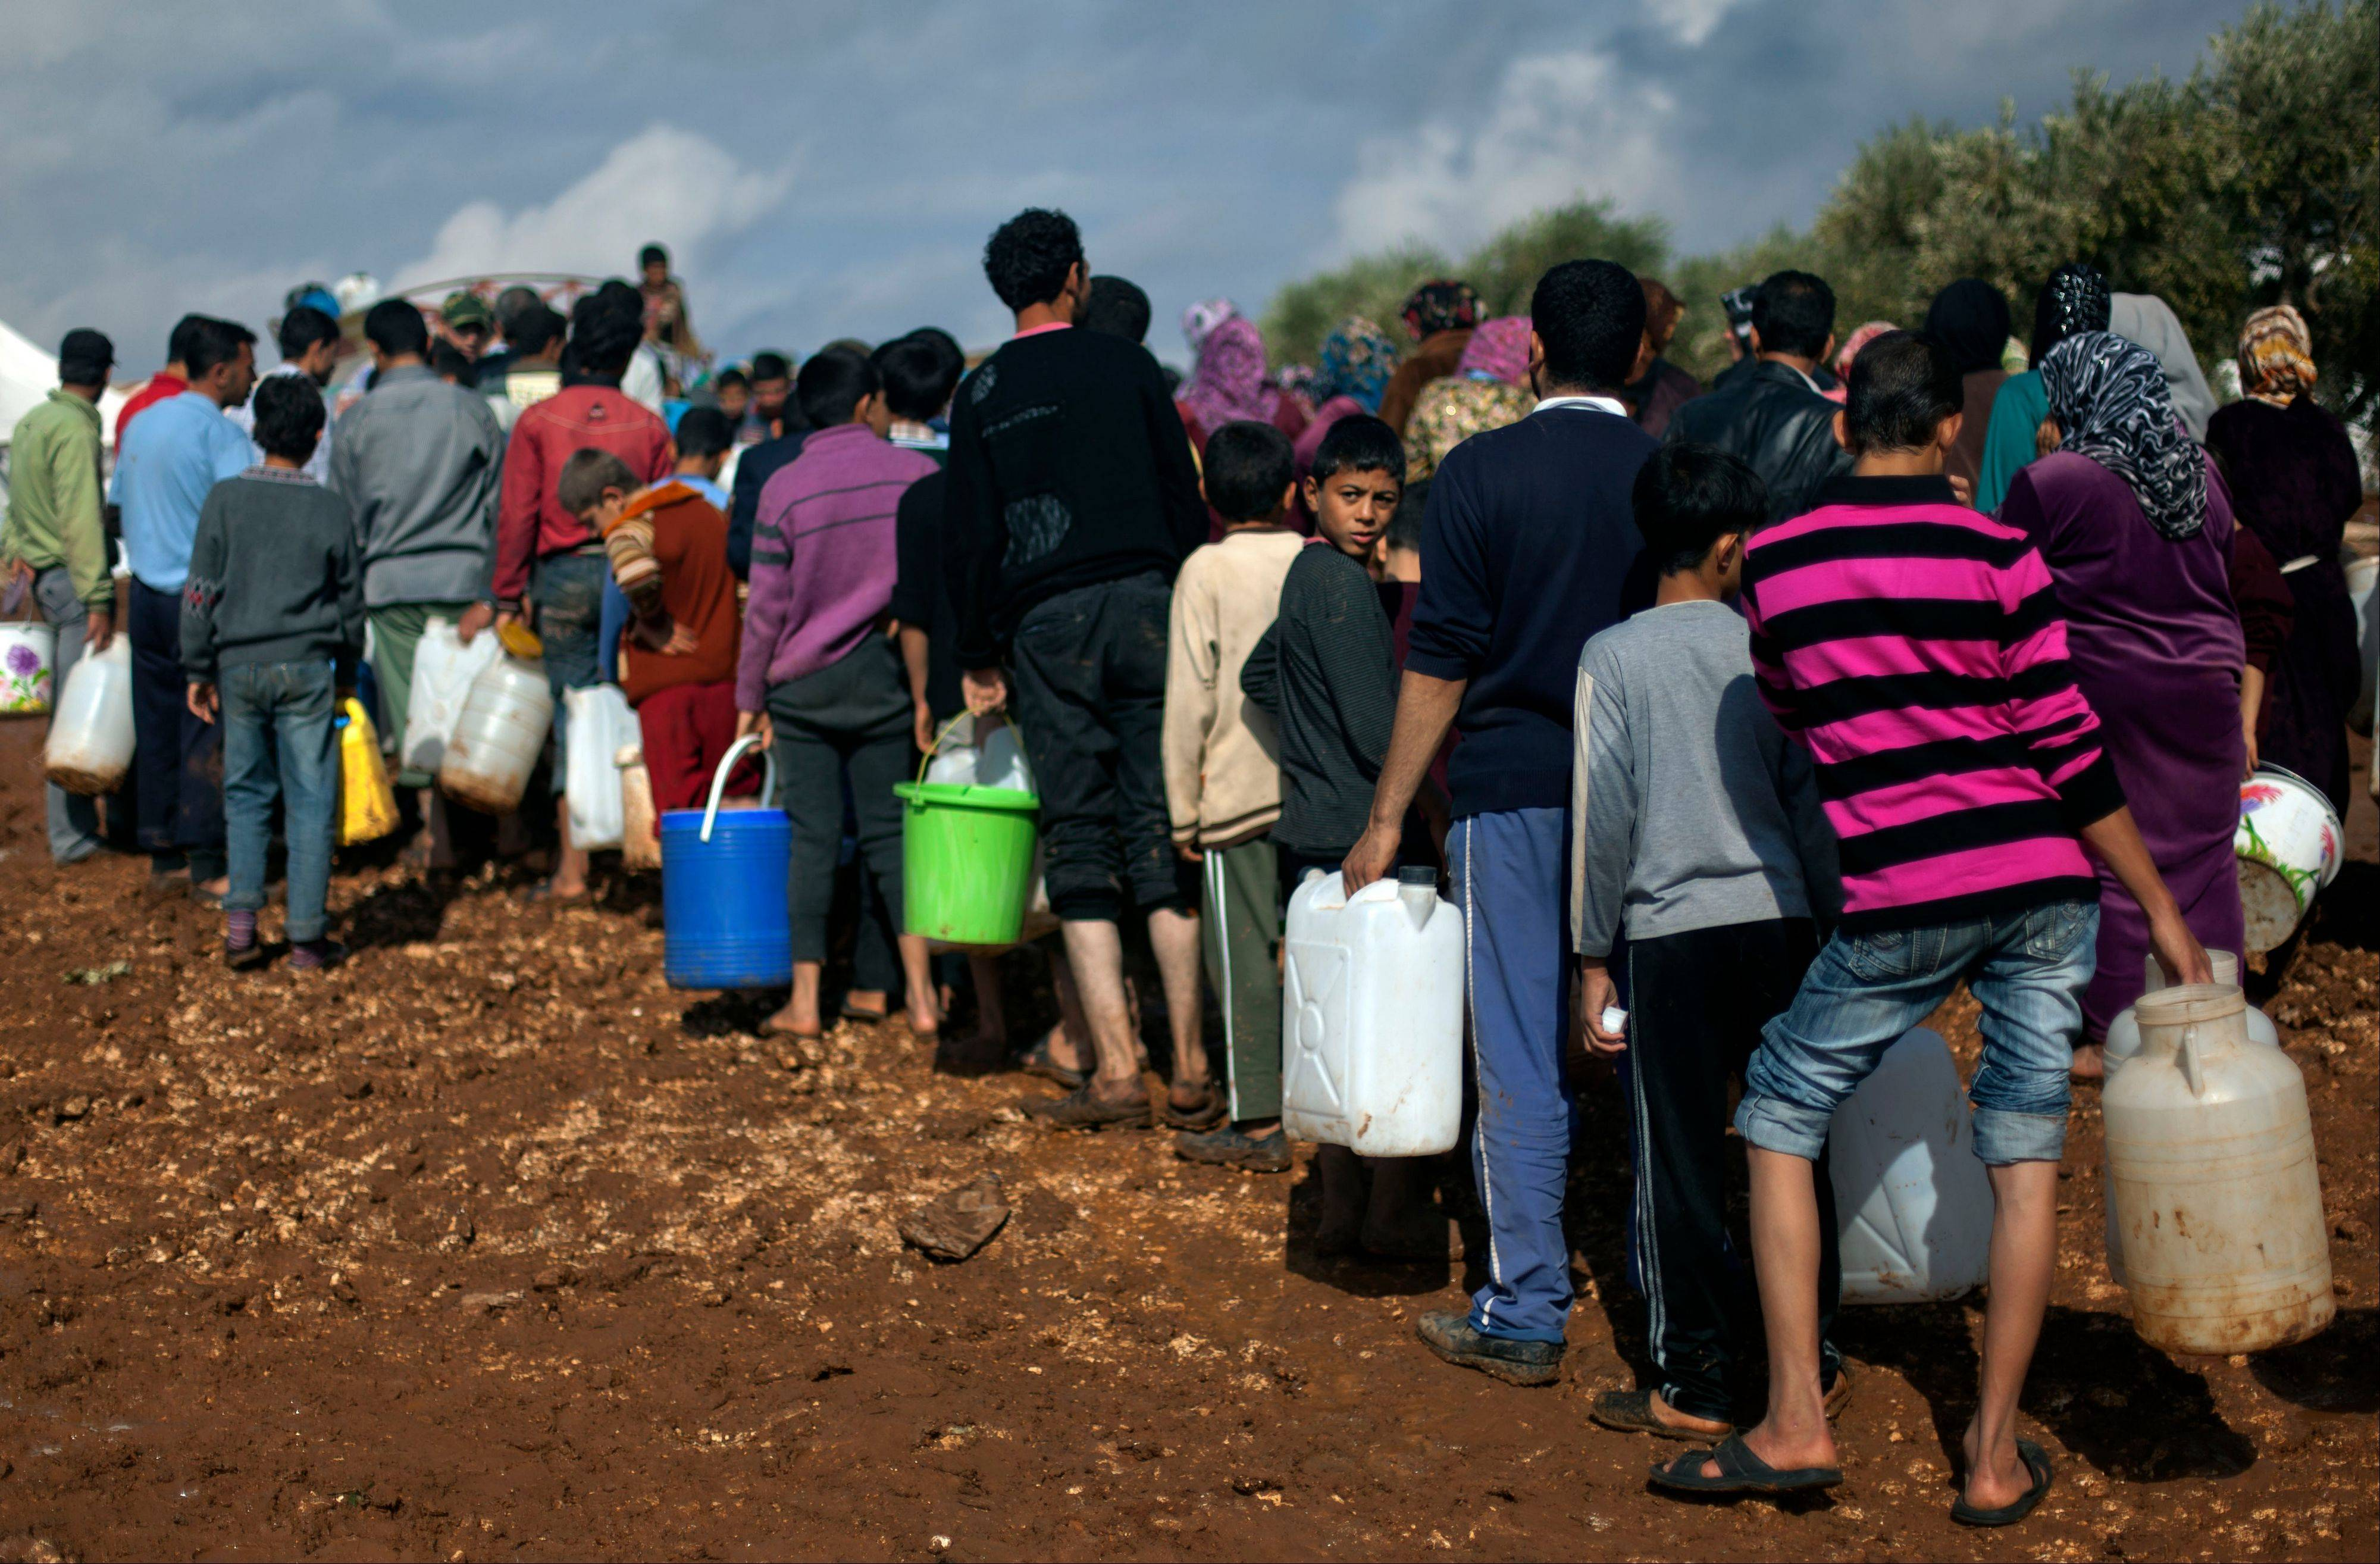 Syrians who fled from the violence in their village, carry plastic containers Saturday as they line up to fill them with water at a displaced camp, in the Syrian village of Atma, near the Turkish border.